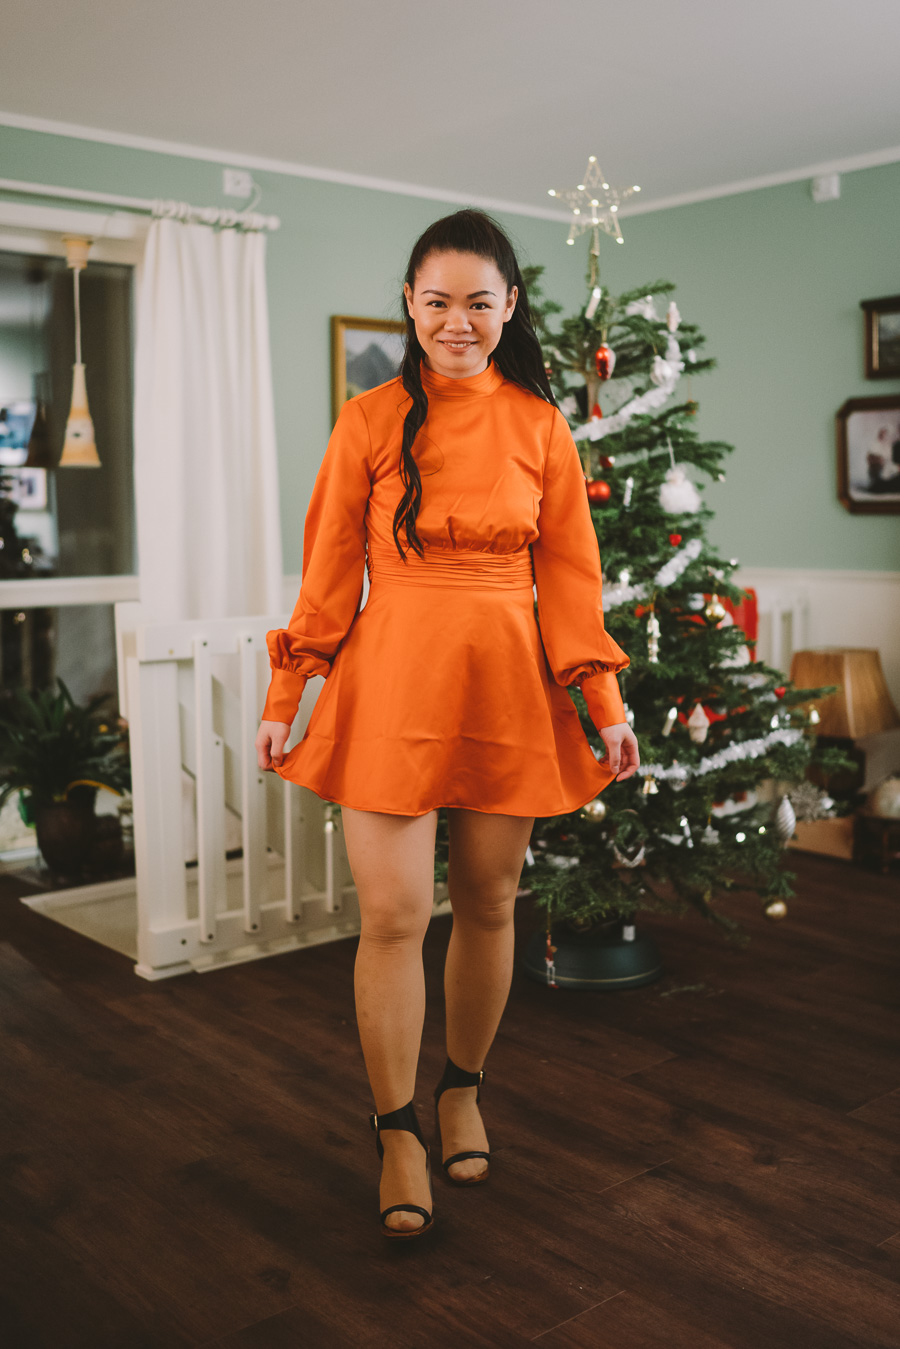 Girl wearing a orange dress in front of a christmas tree